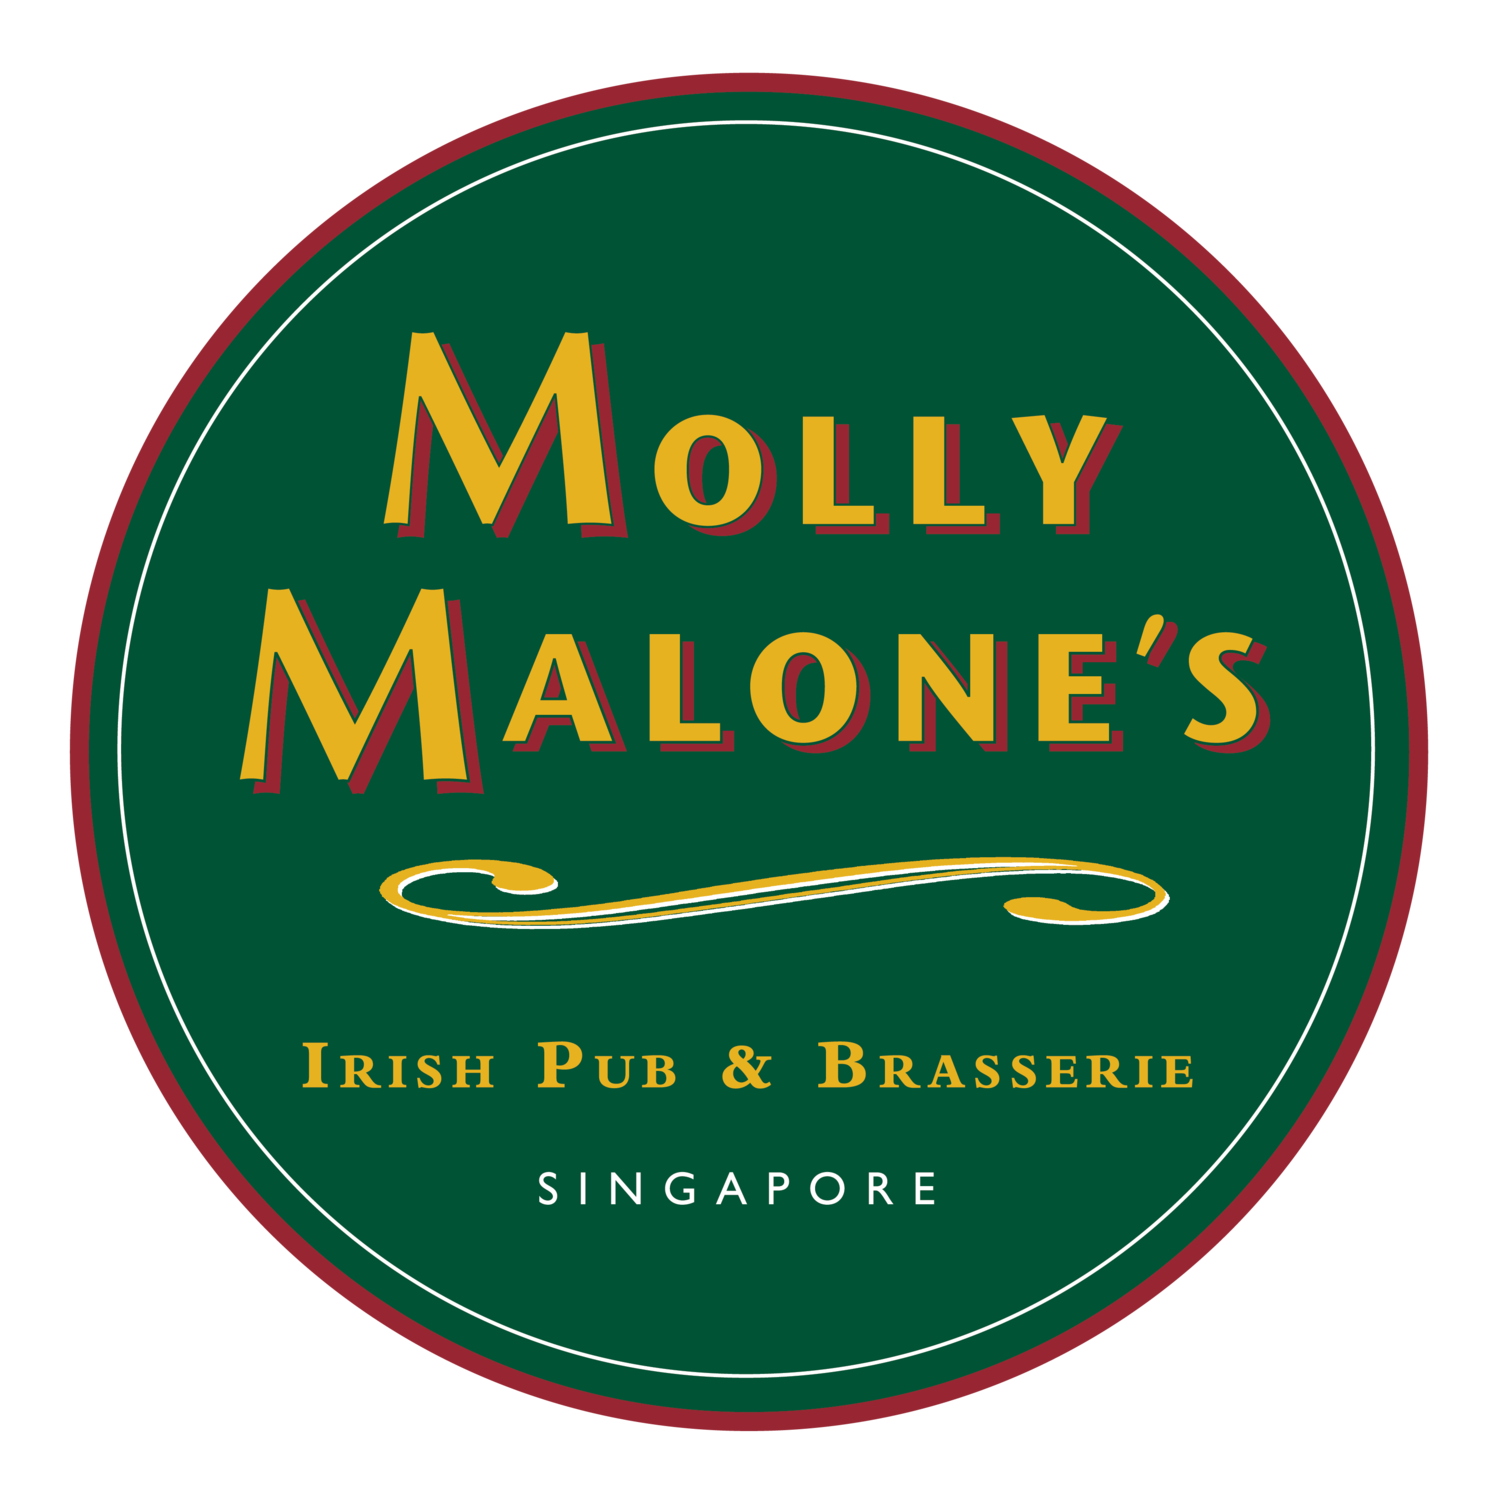 Molly Malone's Irish Pub and Brasserie